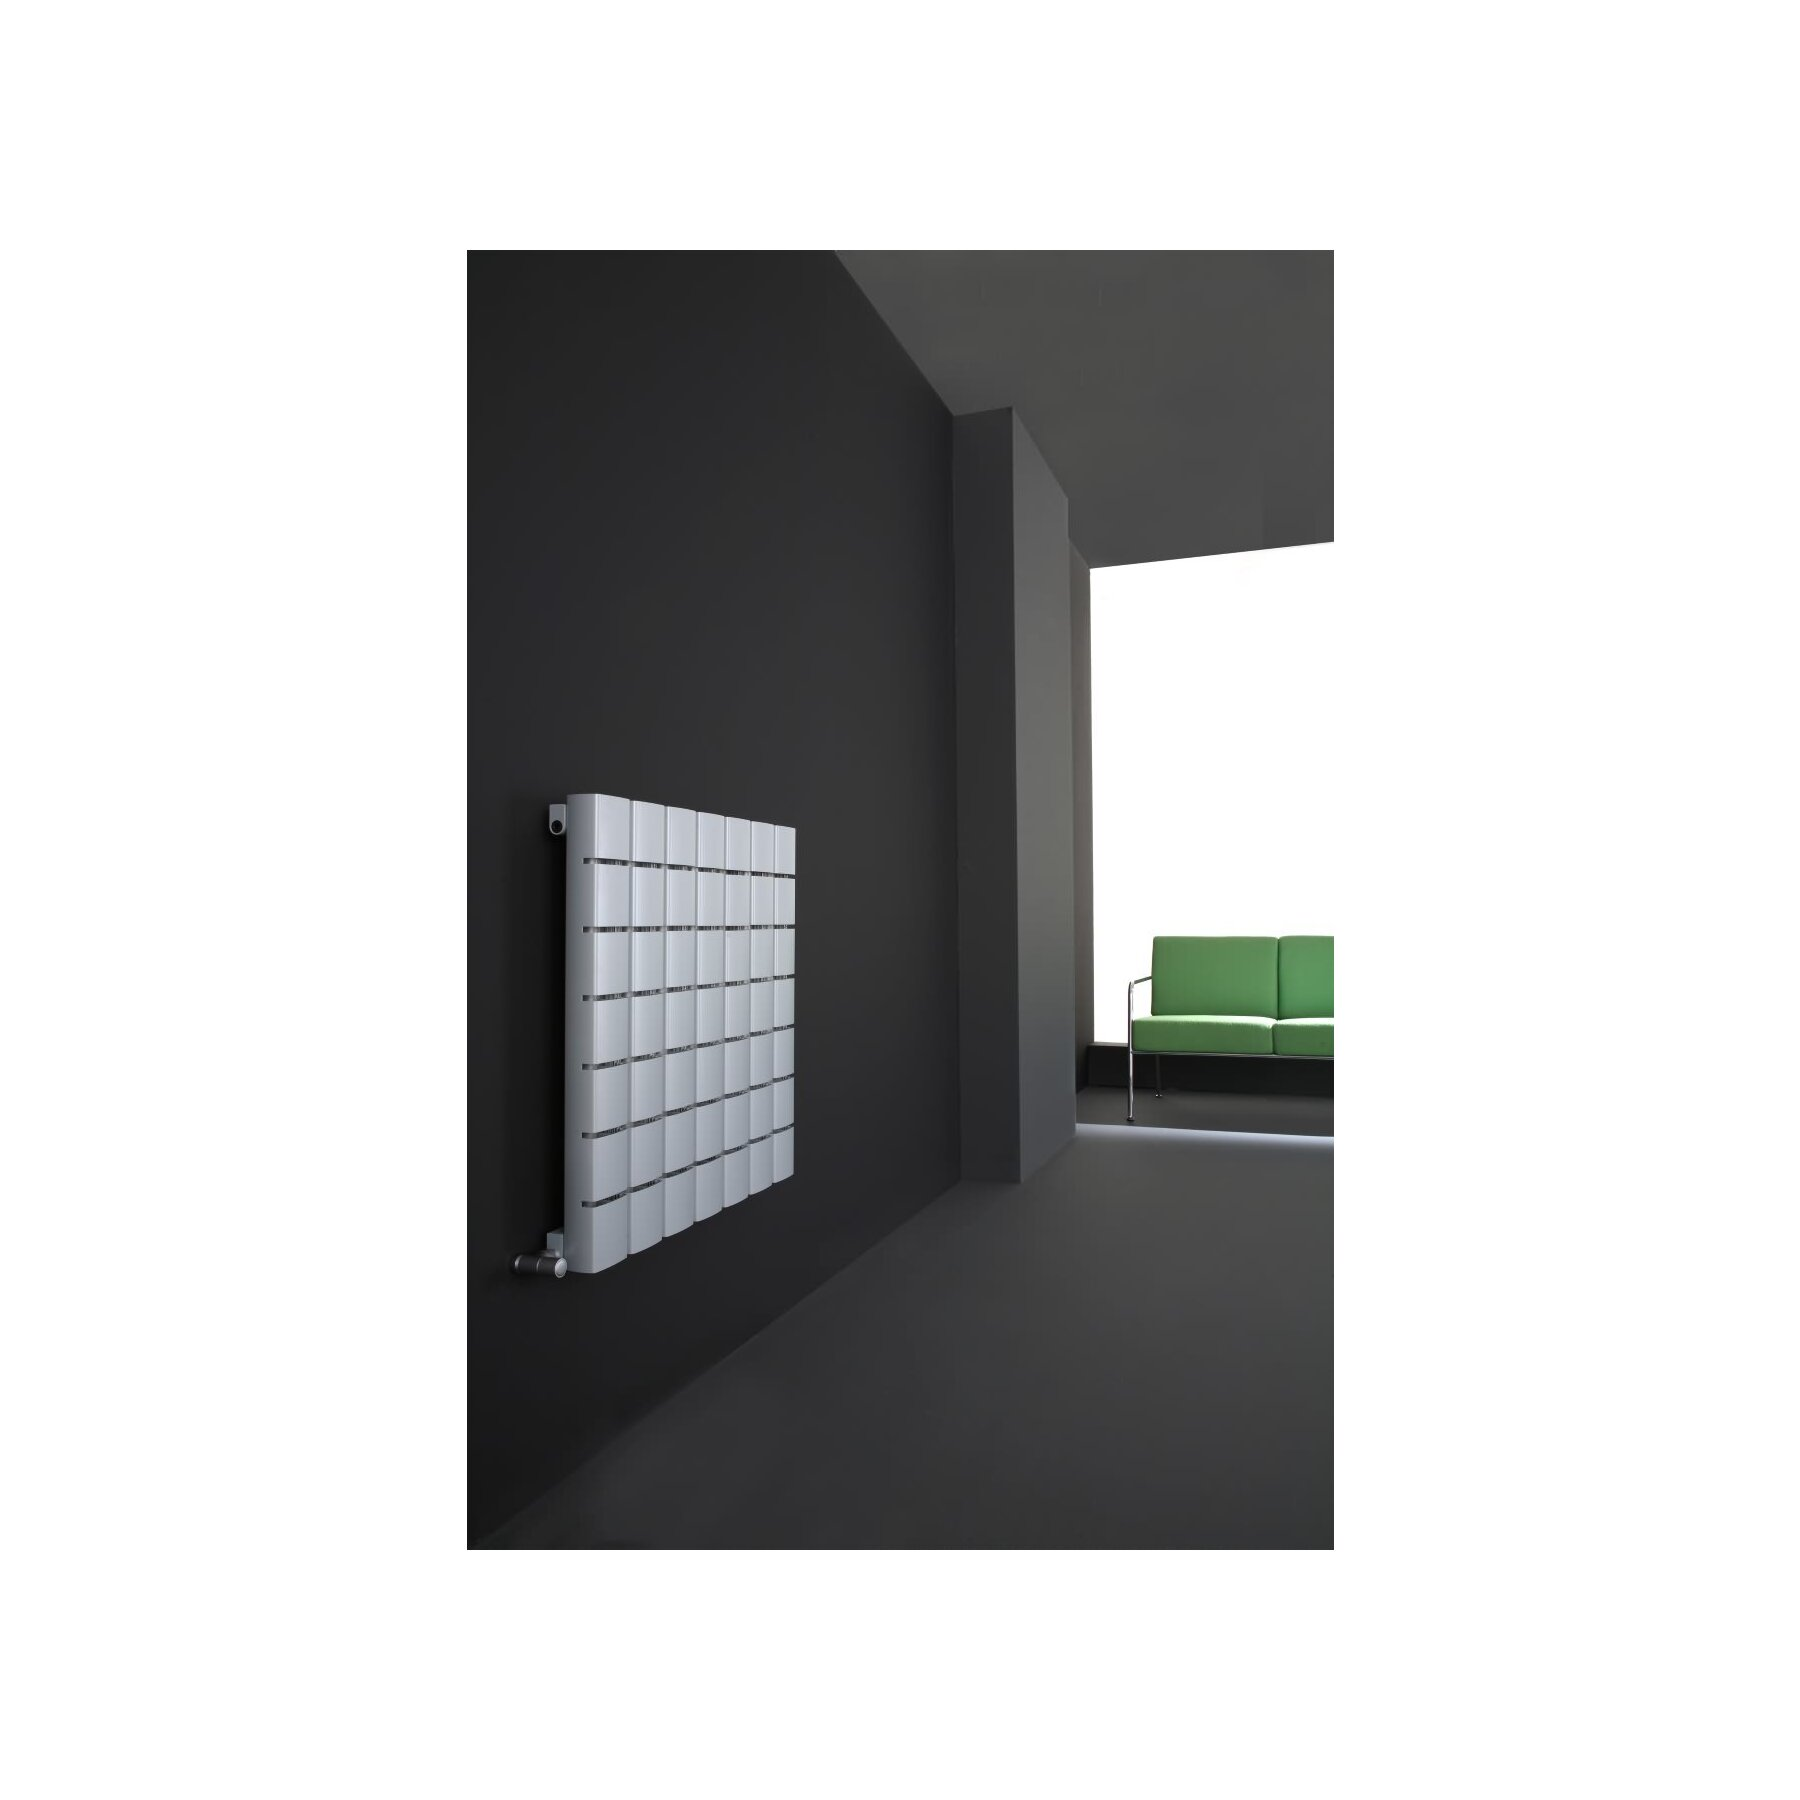 ad hoc mod u design heizk rper aus eloxiertem aluminium. Black Bedroom Furniture Sets. Home Design Ideas